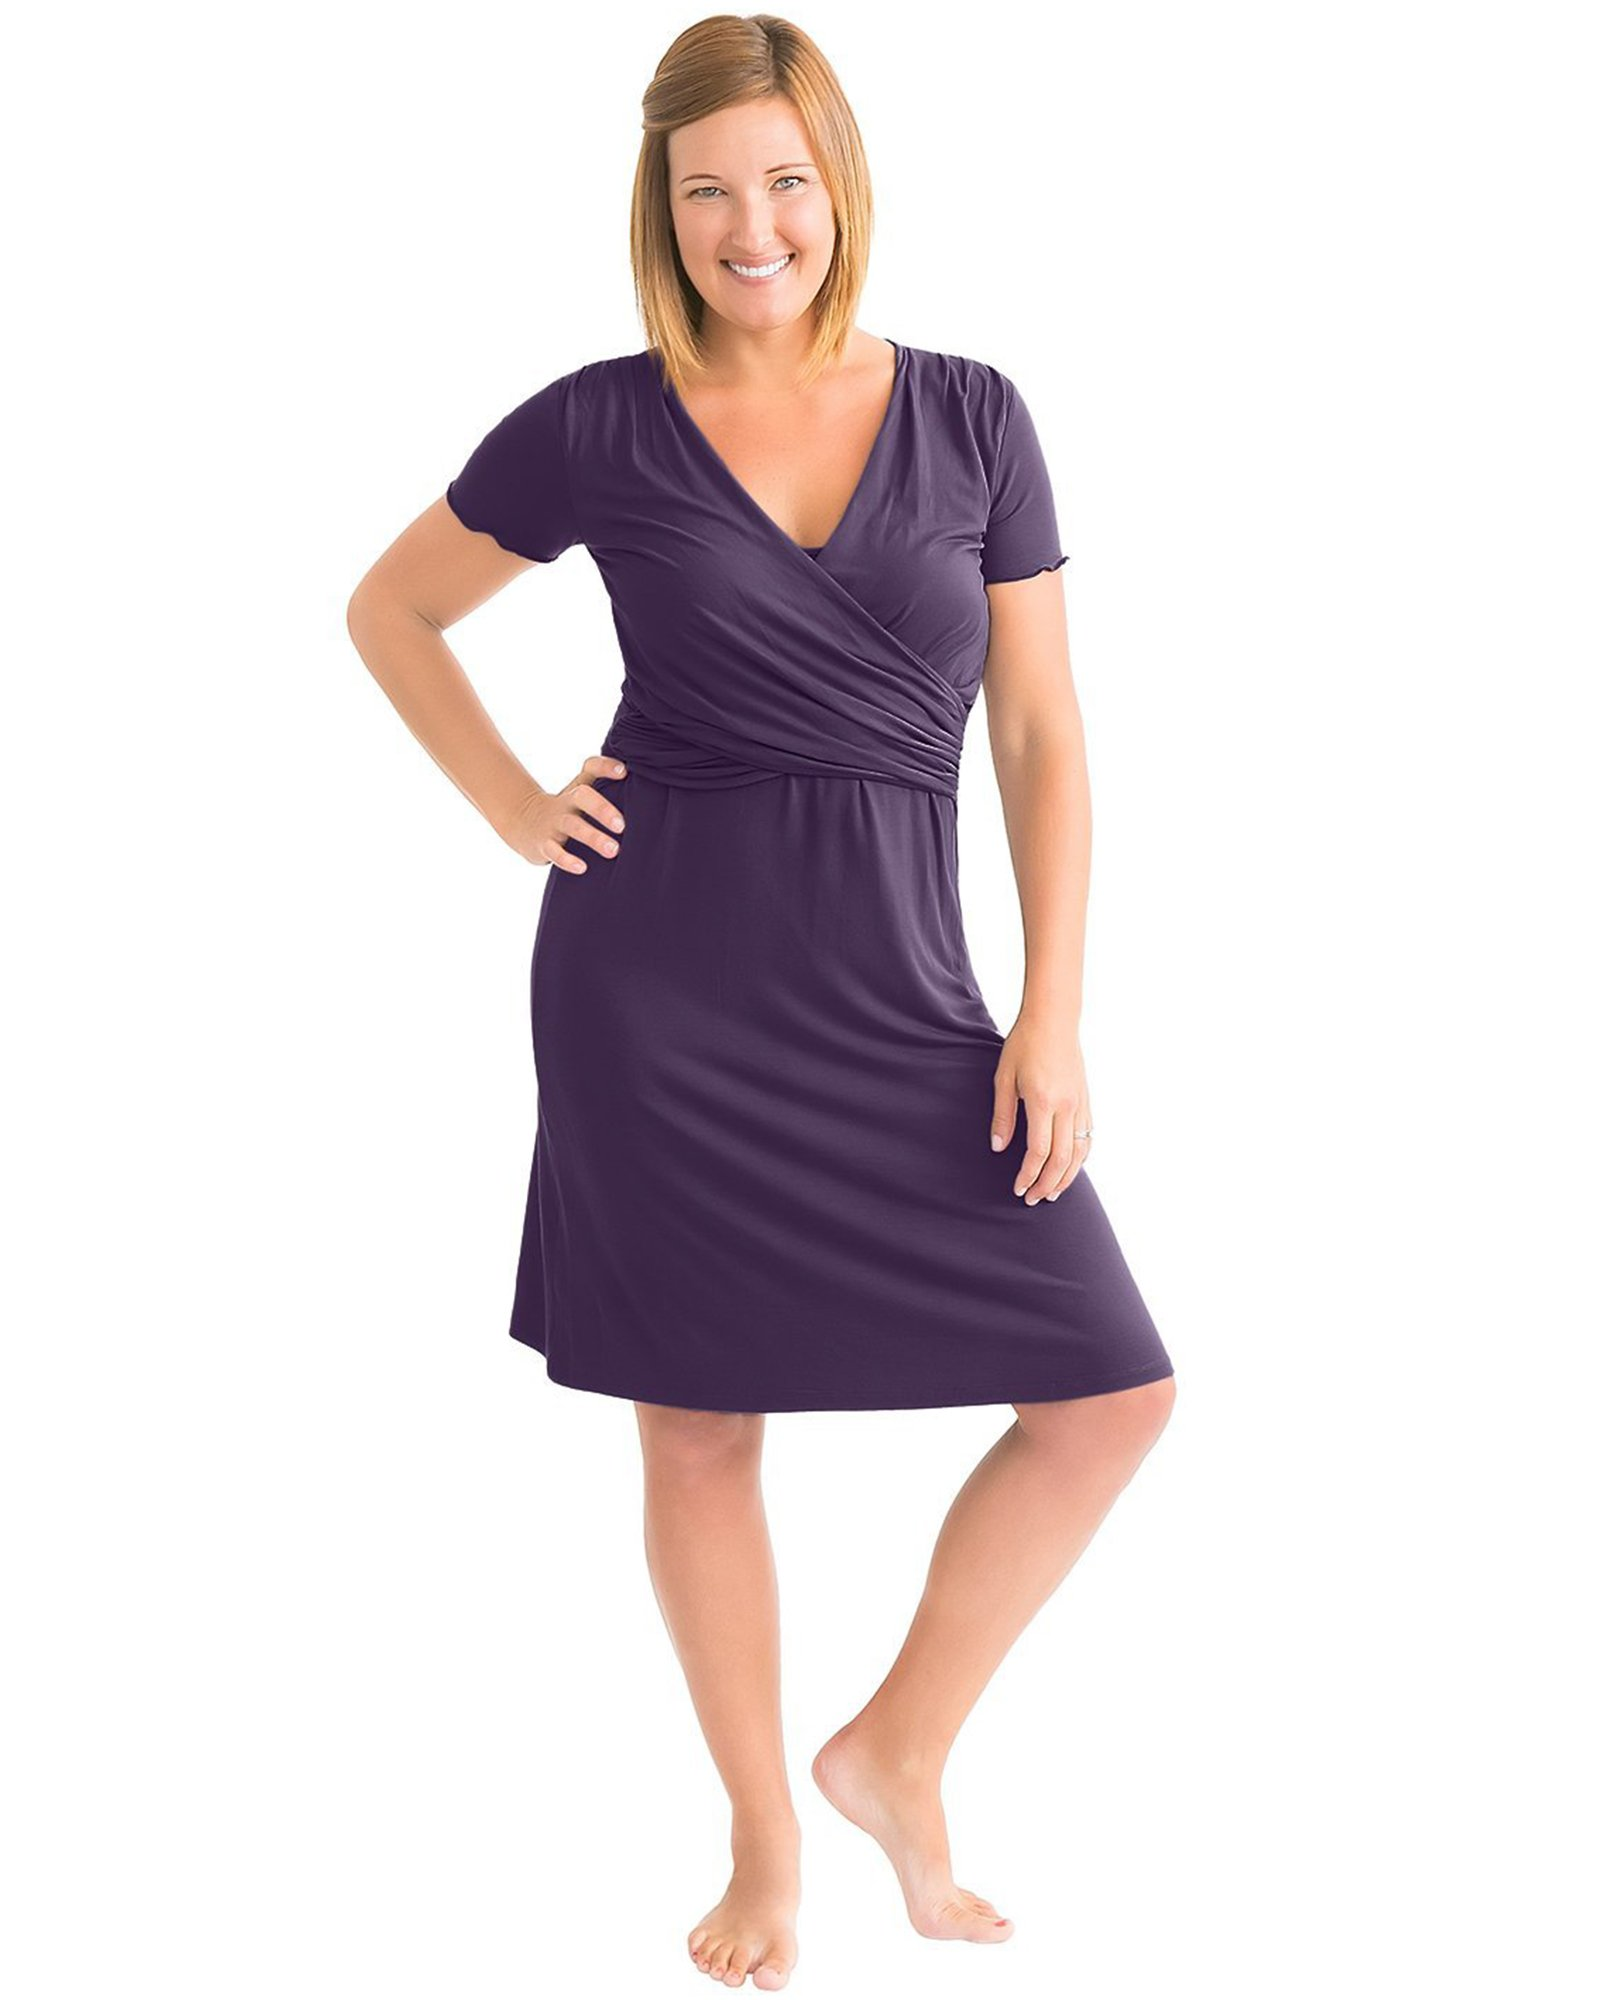 Kindred Bravely Angelina Ultra Soft Maternity & Nursing Nightgown Dress (Eggplant, Medium)